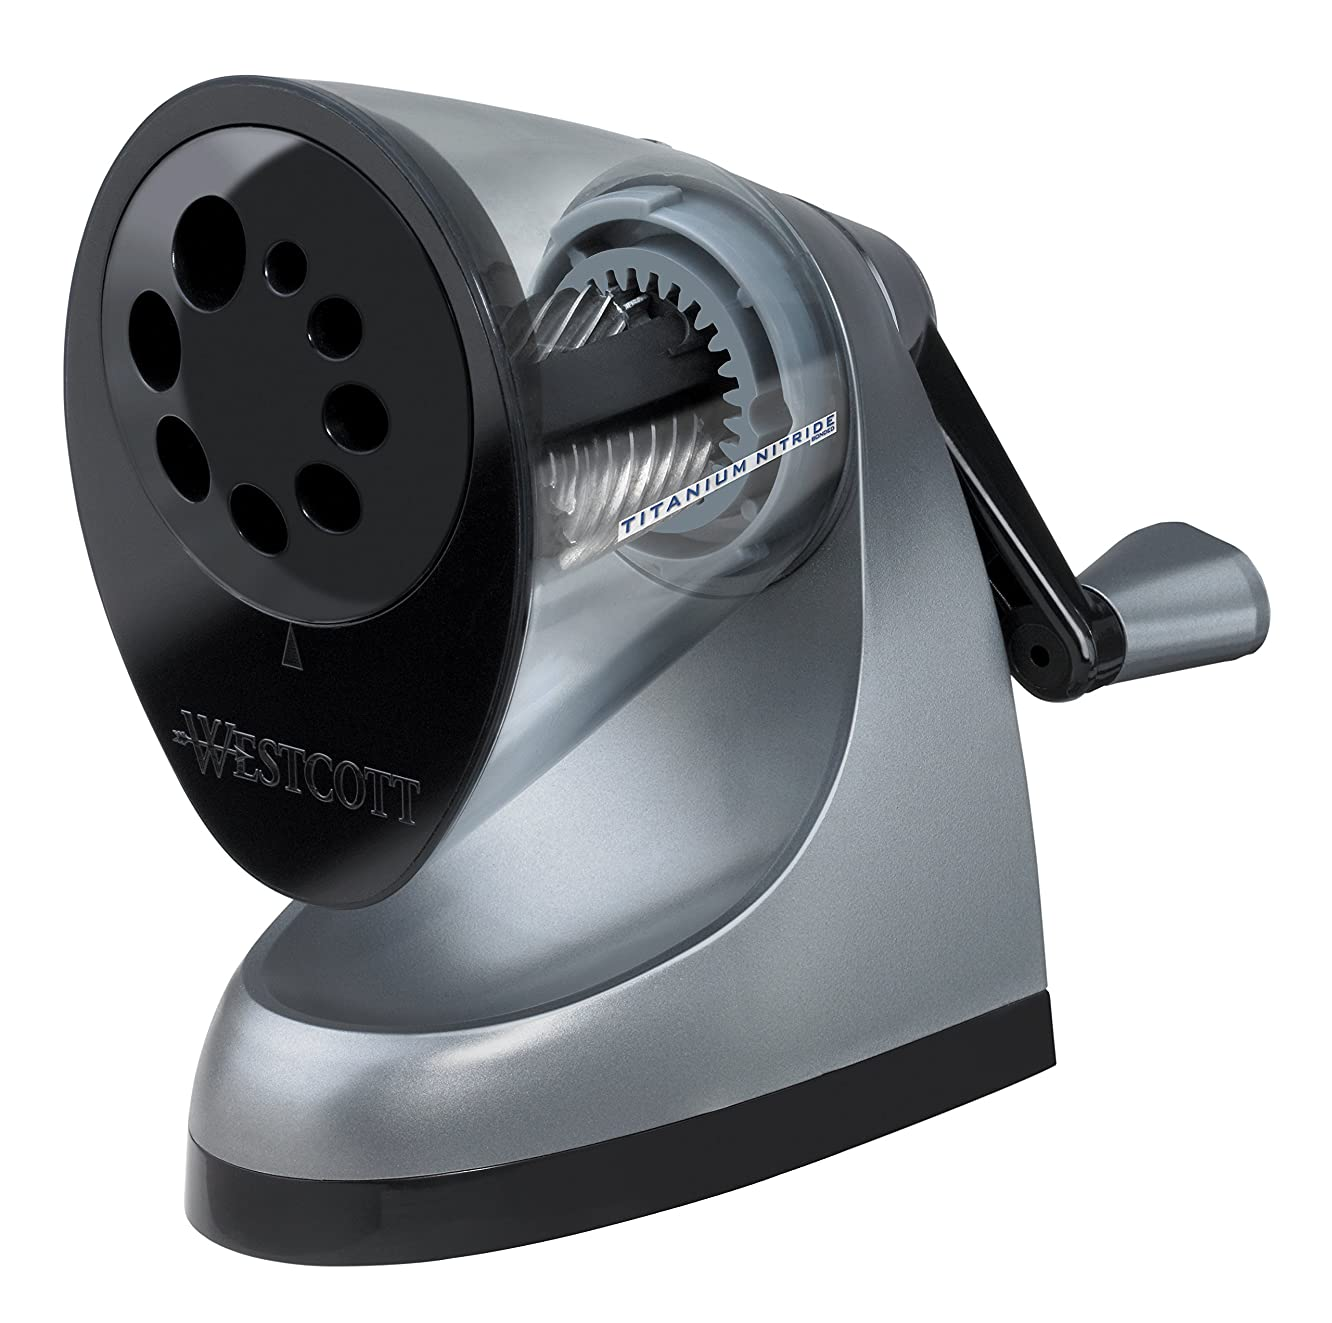 Westcott E-16549 00 iPoint ClassAct Manual Pencil Sharpener with Anti-Microbial Protection - Grey